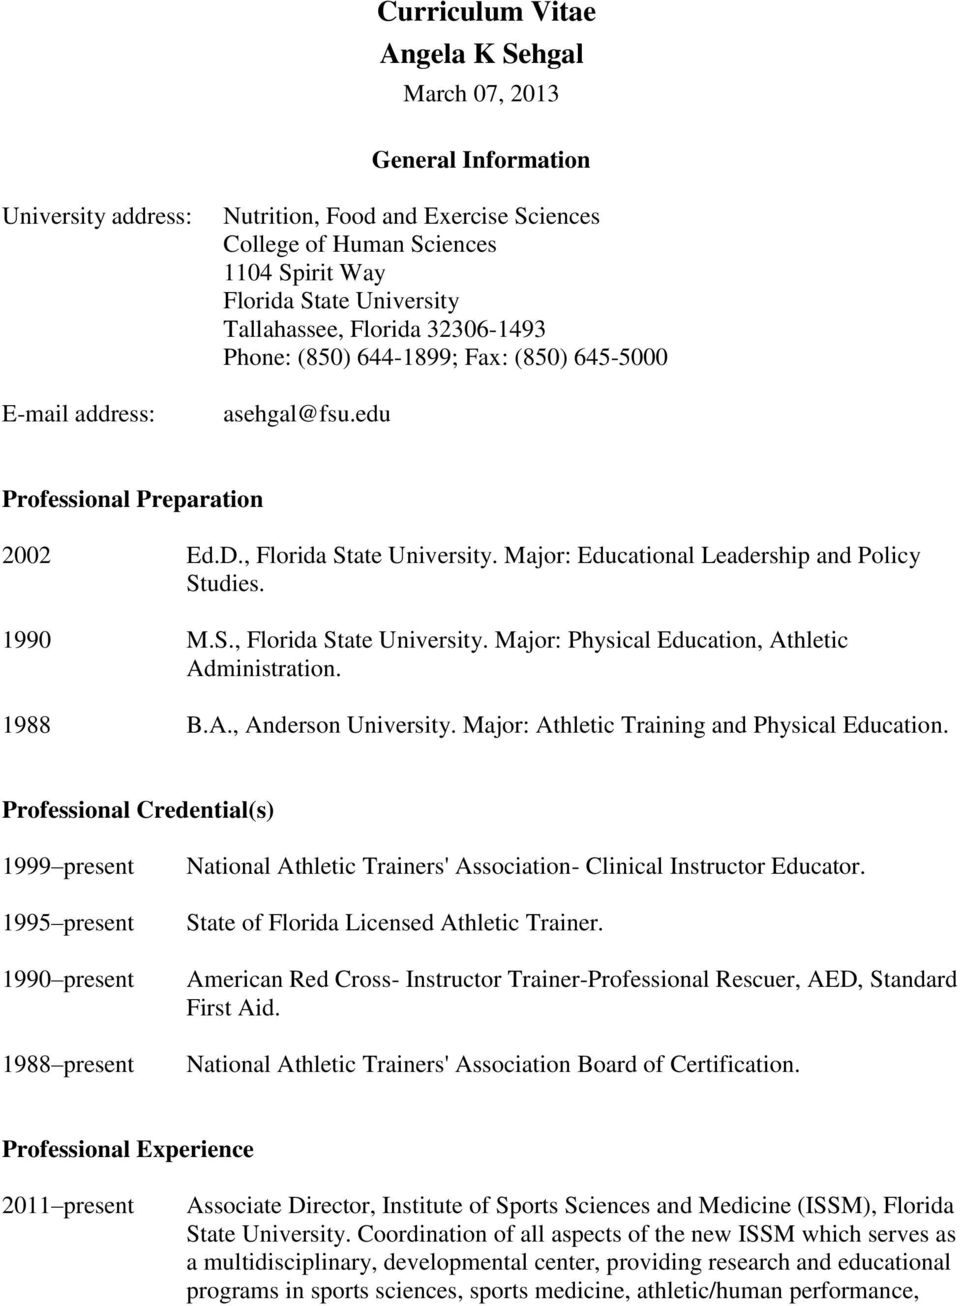 Major: Educational Leadership and Policy Studies. 1990 M.S., Florida State University. Major: Physical Education, Athletic Administration. 1988 B.A., Anderson University.